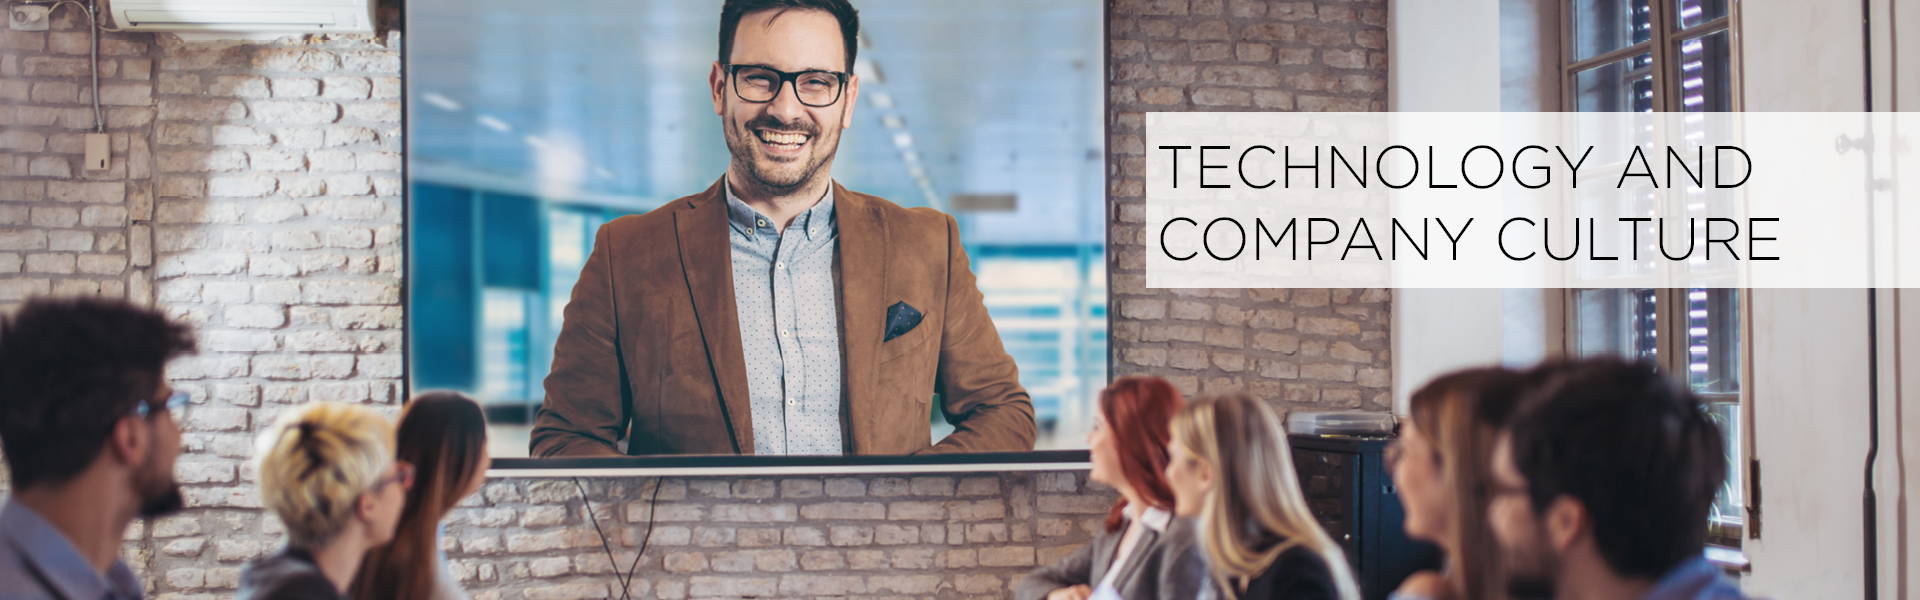 Technology and Company Culture-1